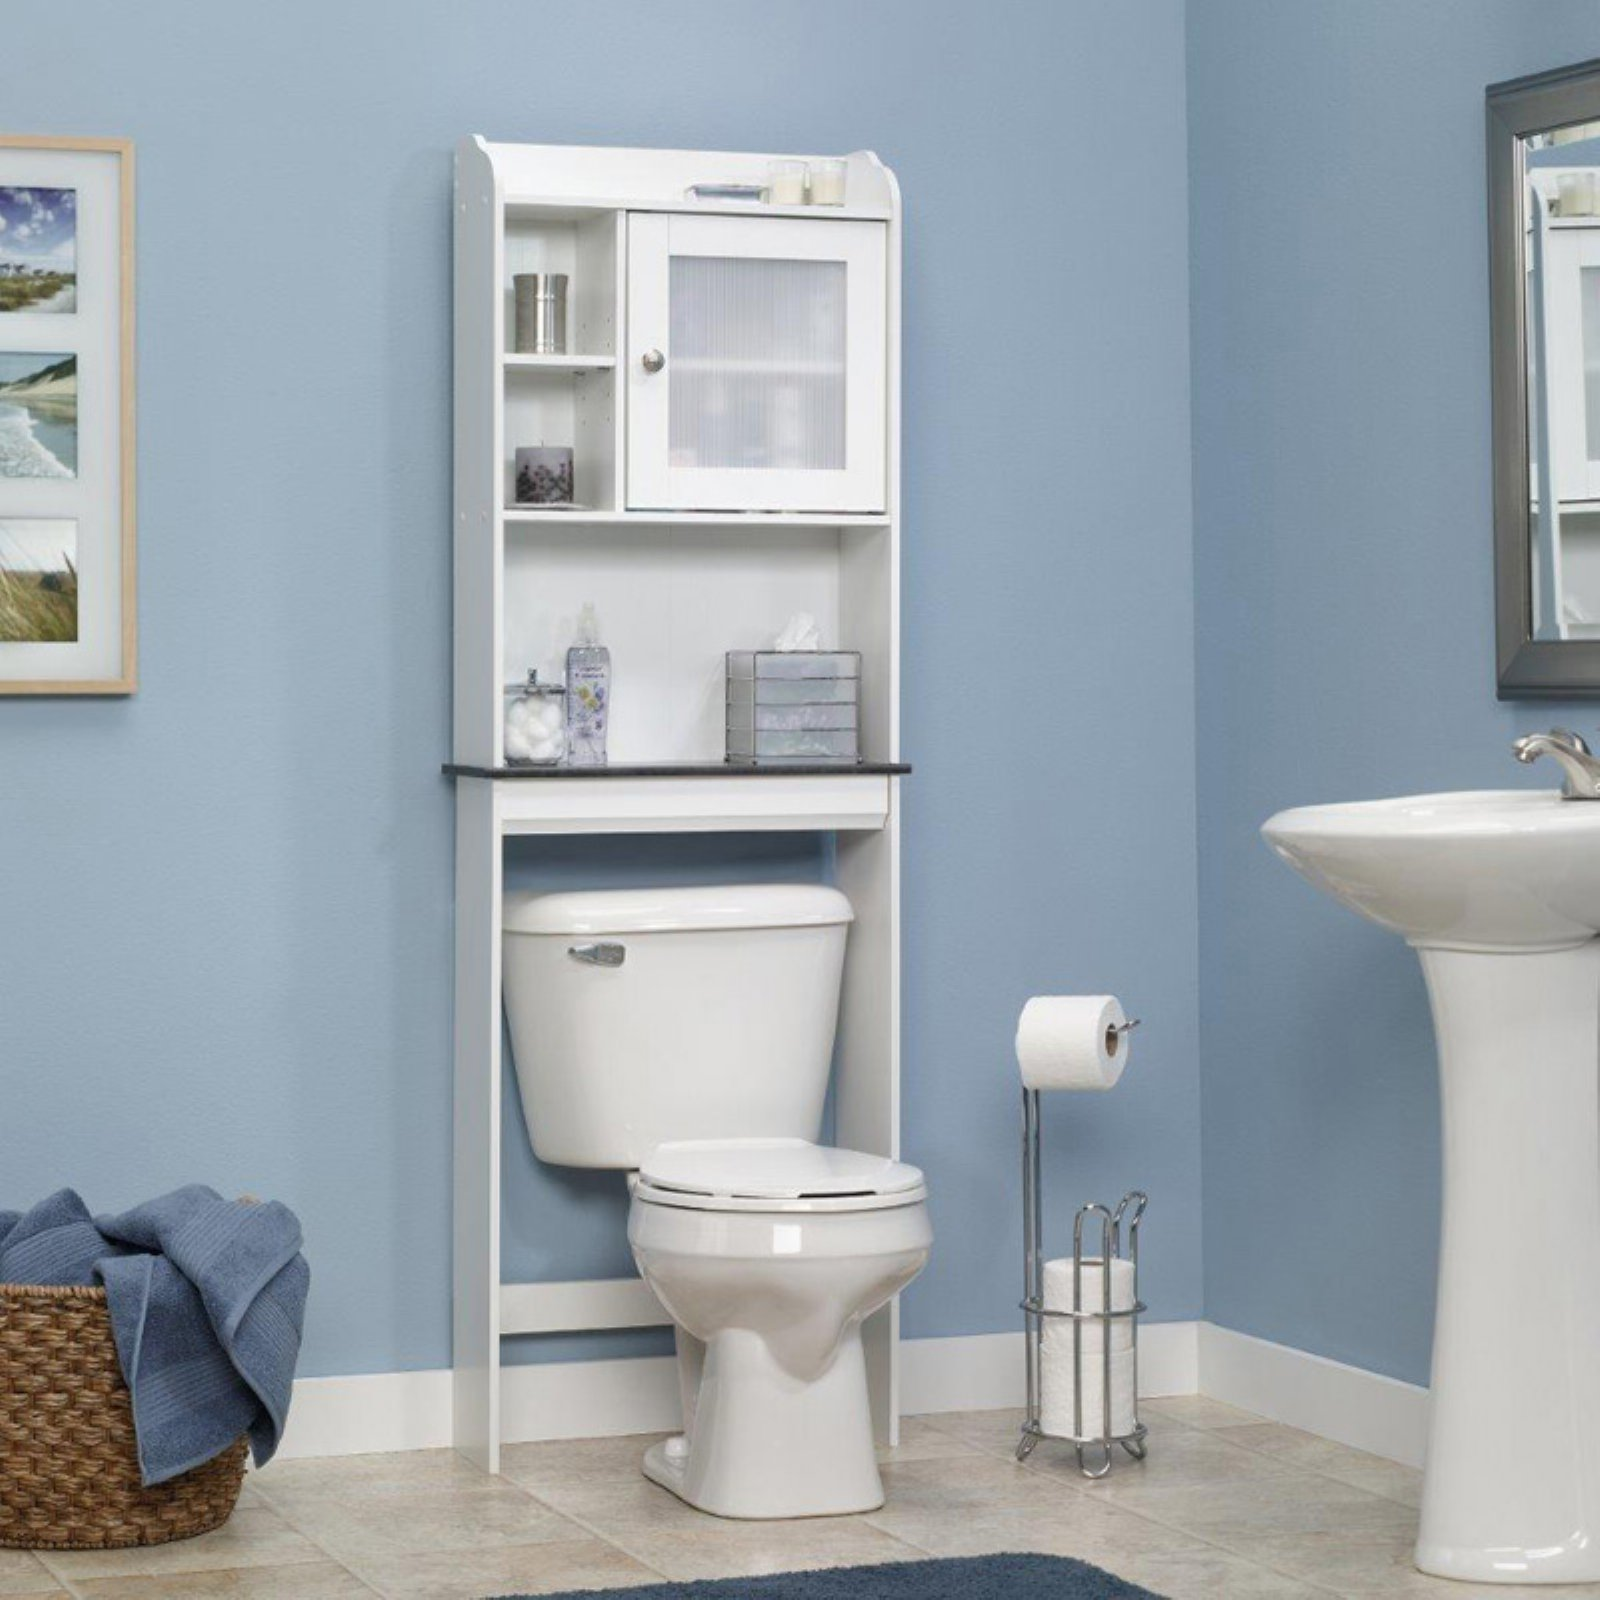 Sauder Bath Caraway Collection Space Saver